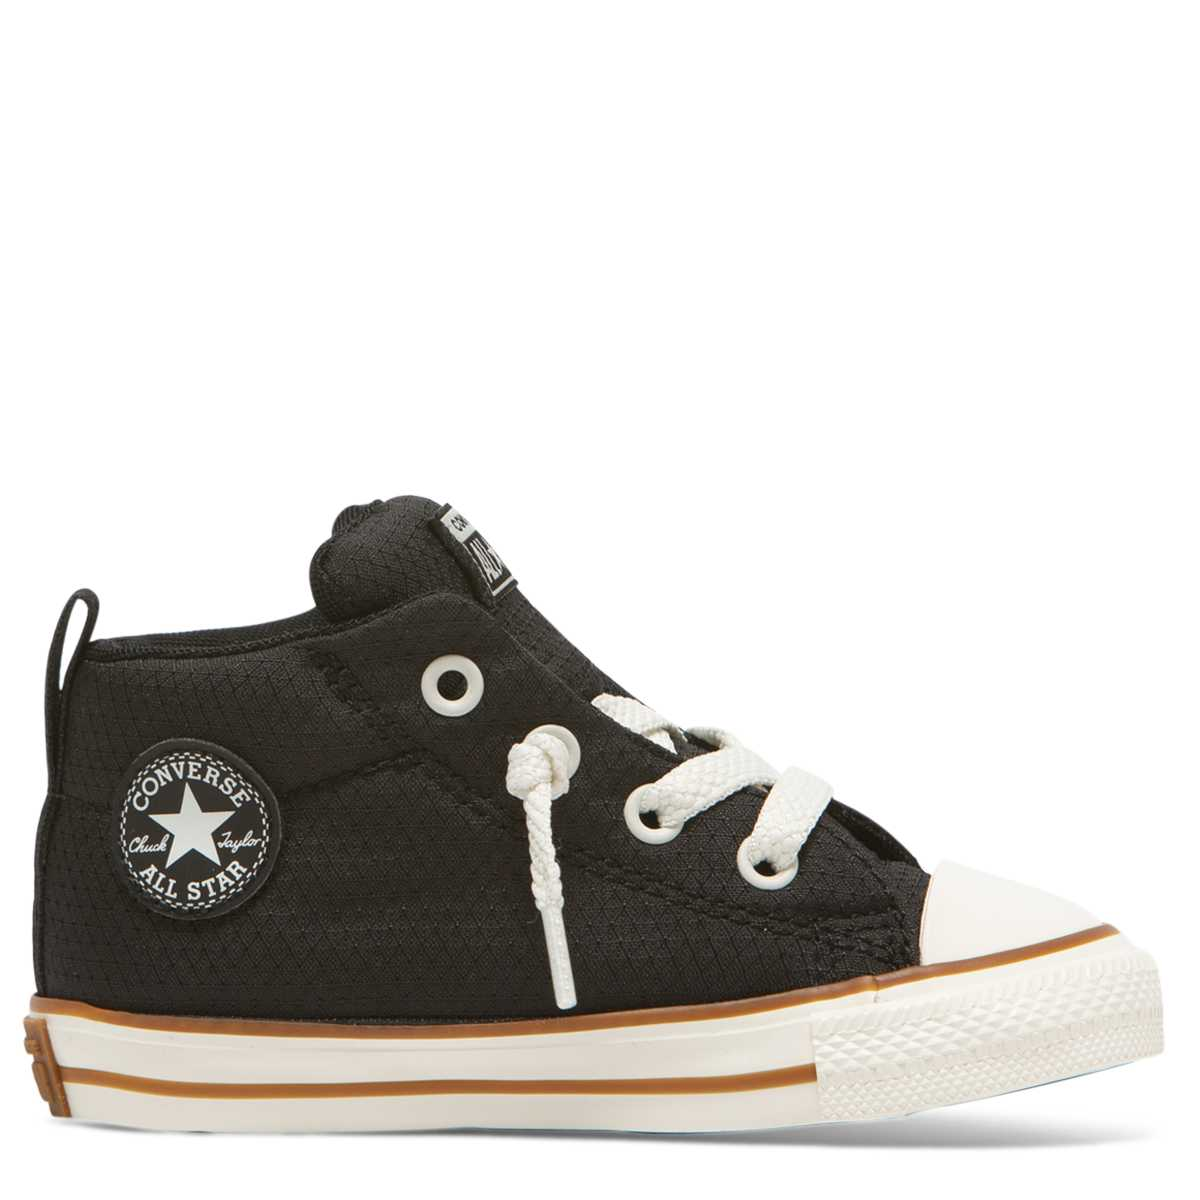 Converse Kids Chuck Taylor All Star Street Pinstripe Toddler Mid Top Black